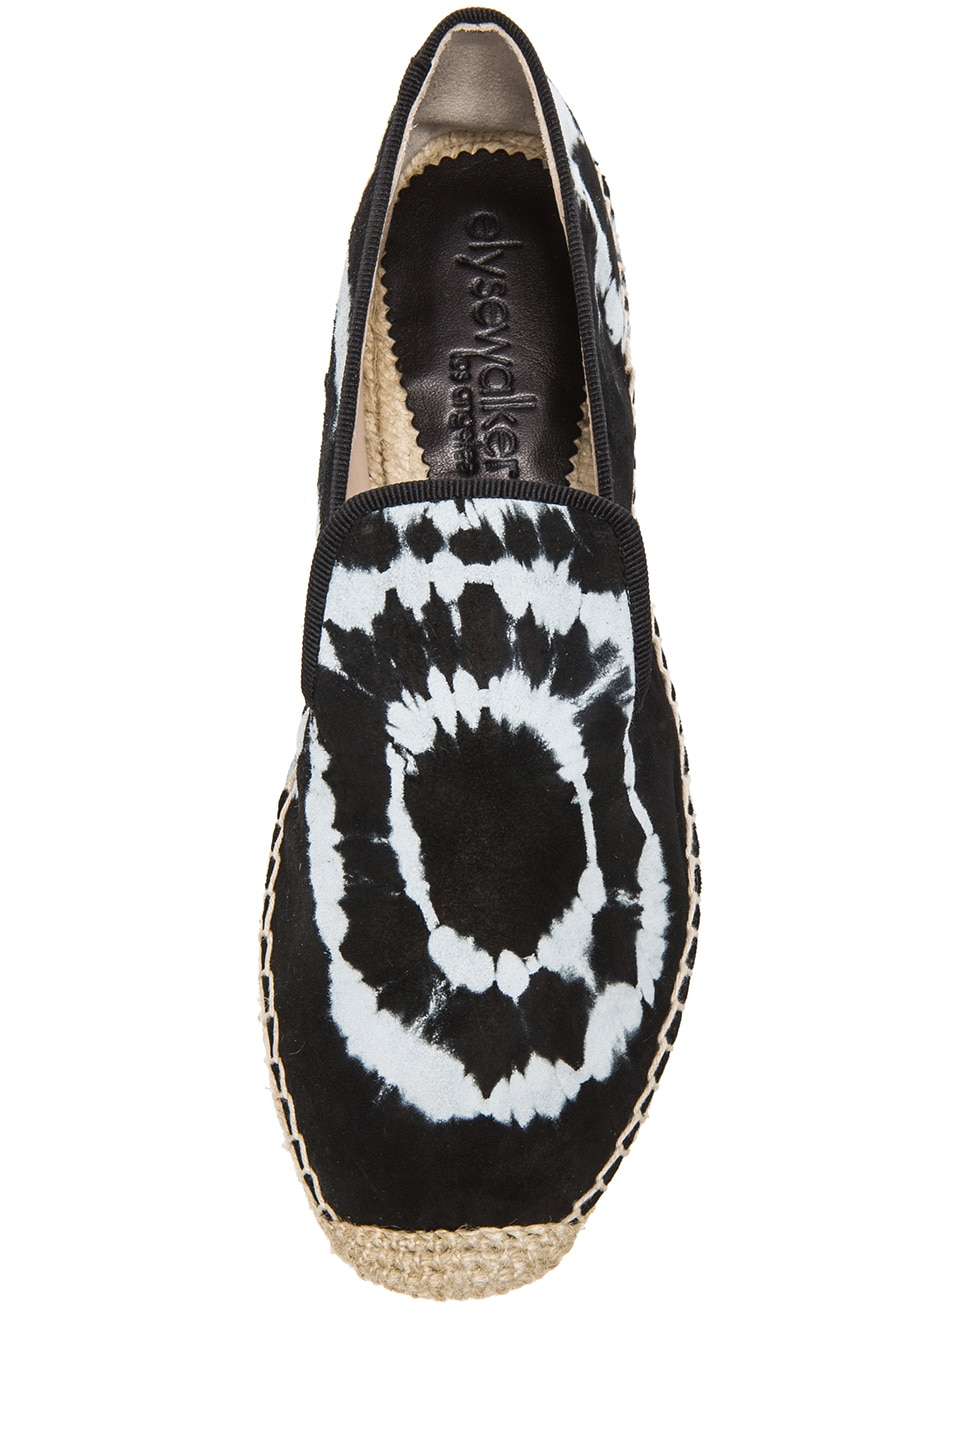 Image 4 of elysewalker los angeles Tie Dye Satik Suede Espadrilles in Black & White